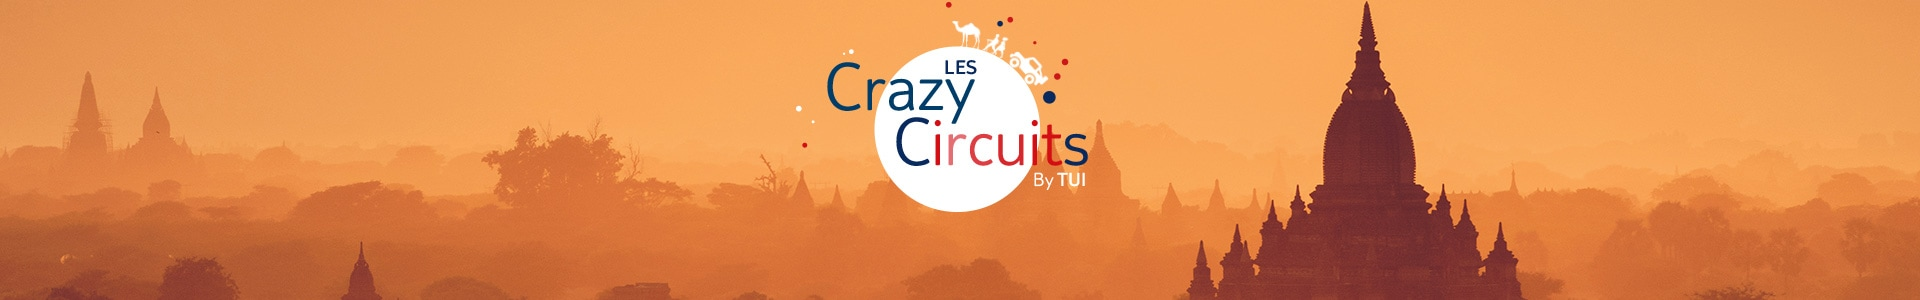 Les Crazy Circuits